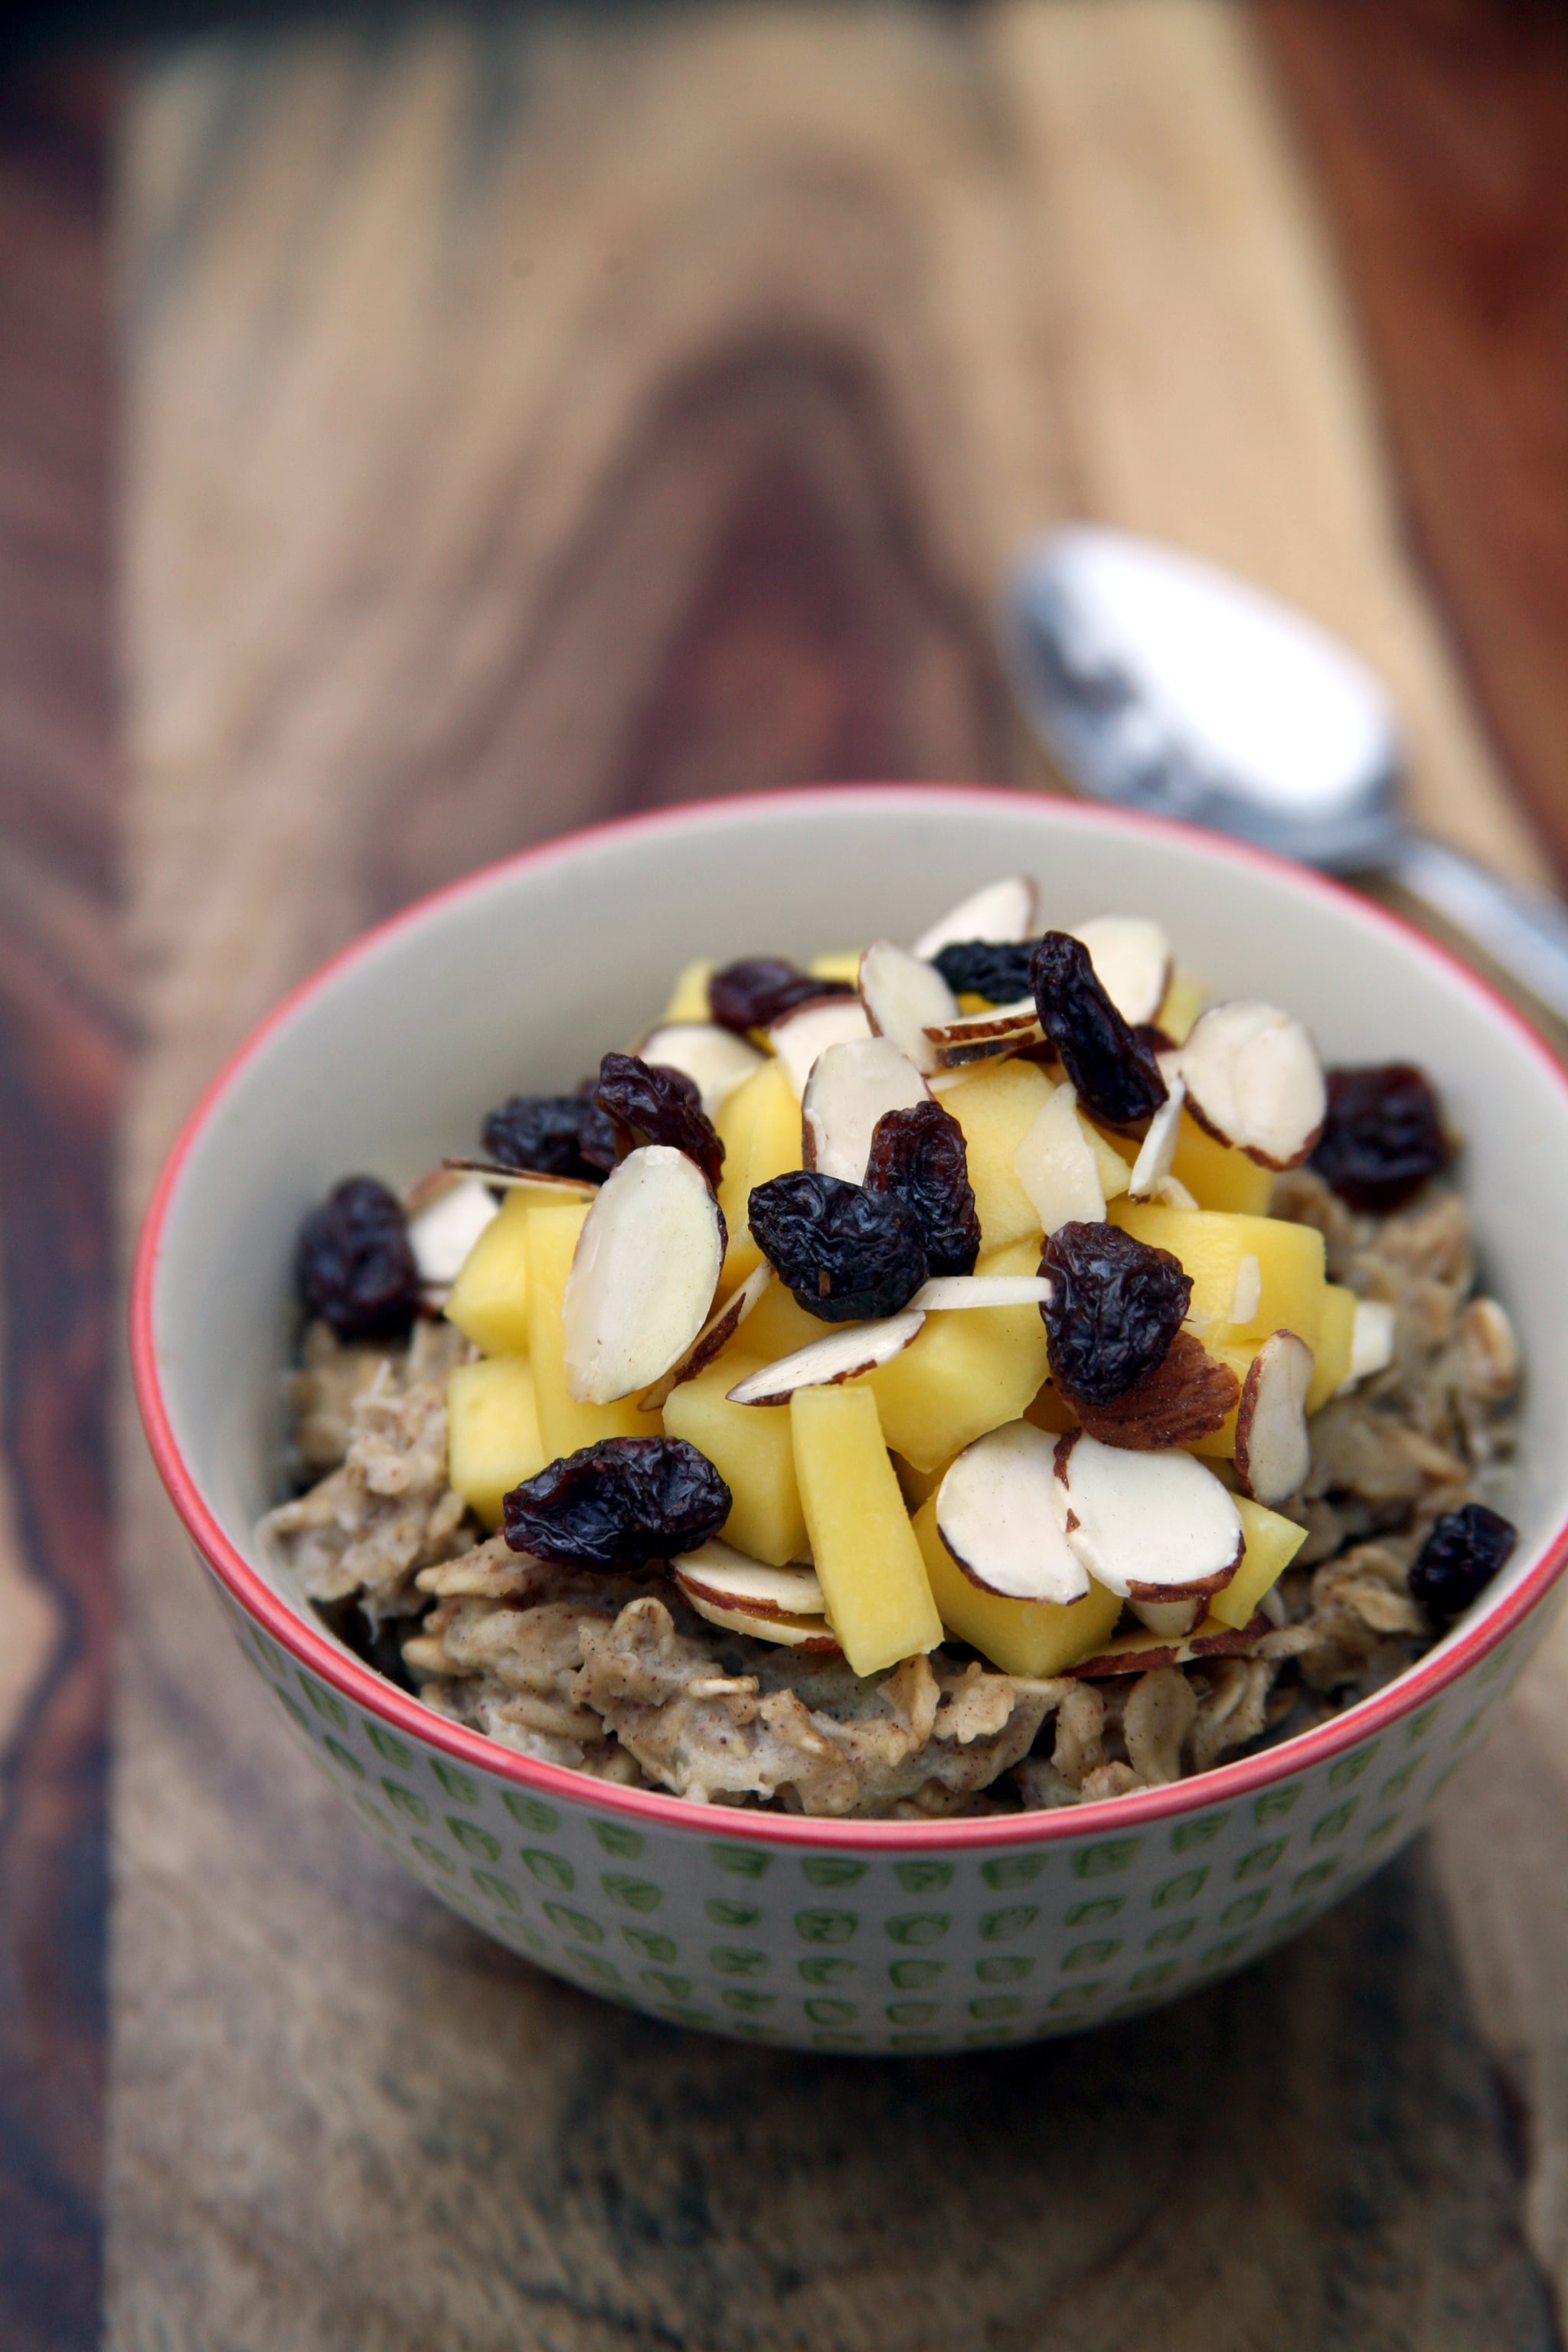 Easy, Warm, Low-Sugar, High-Protein Breakfast For Weight Loss